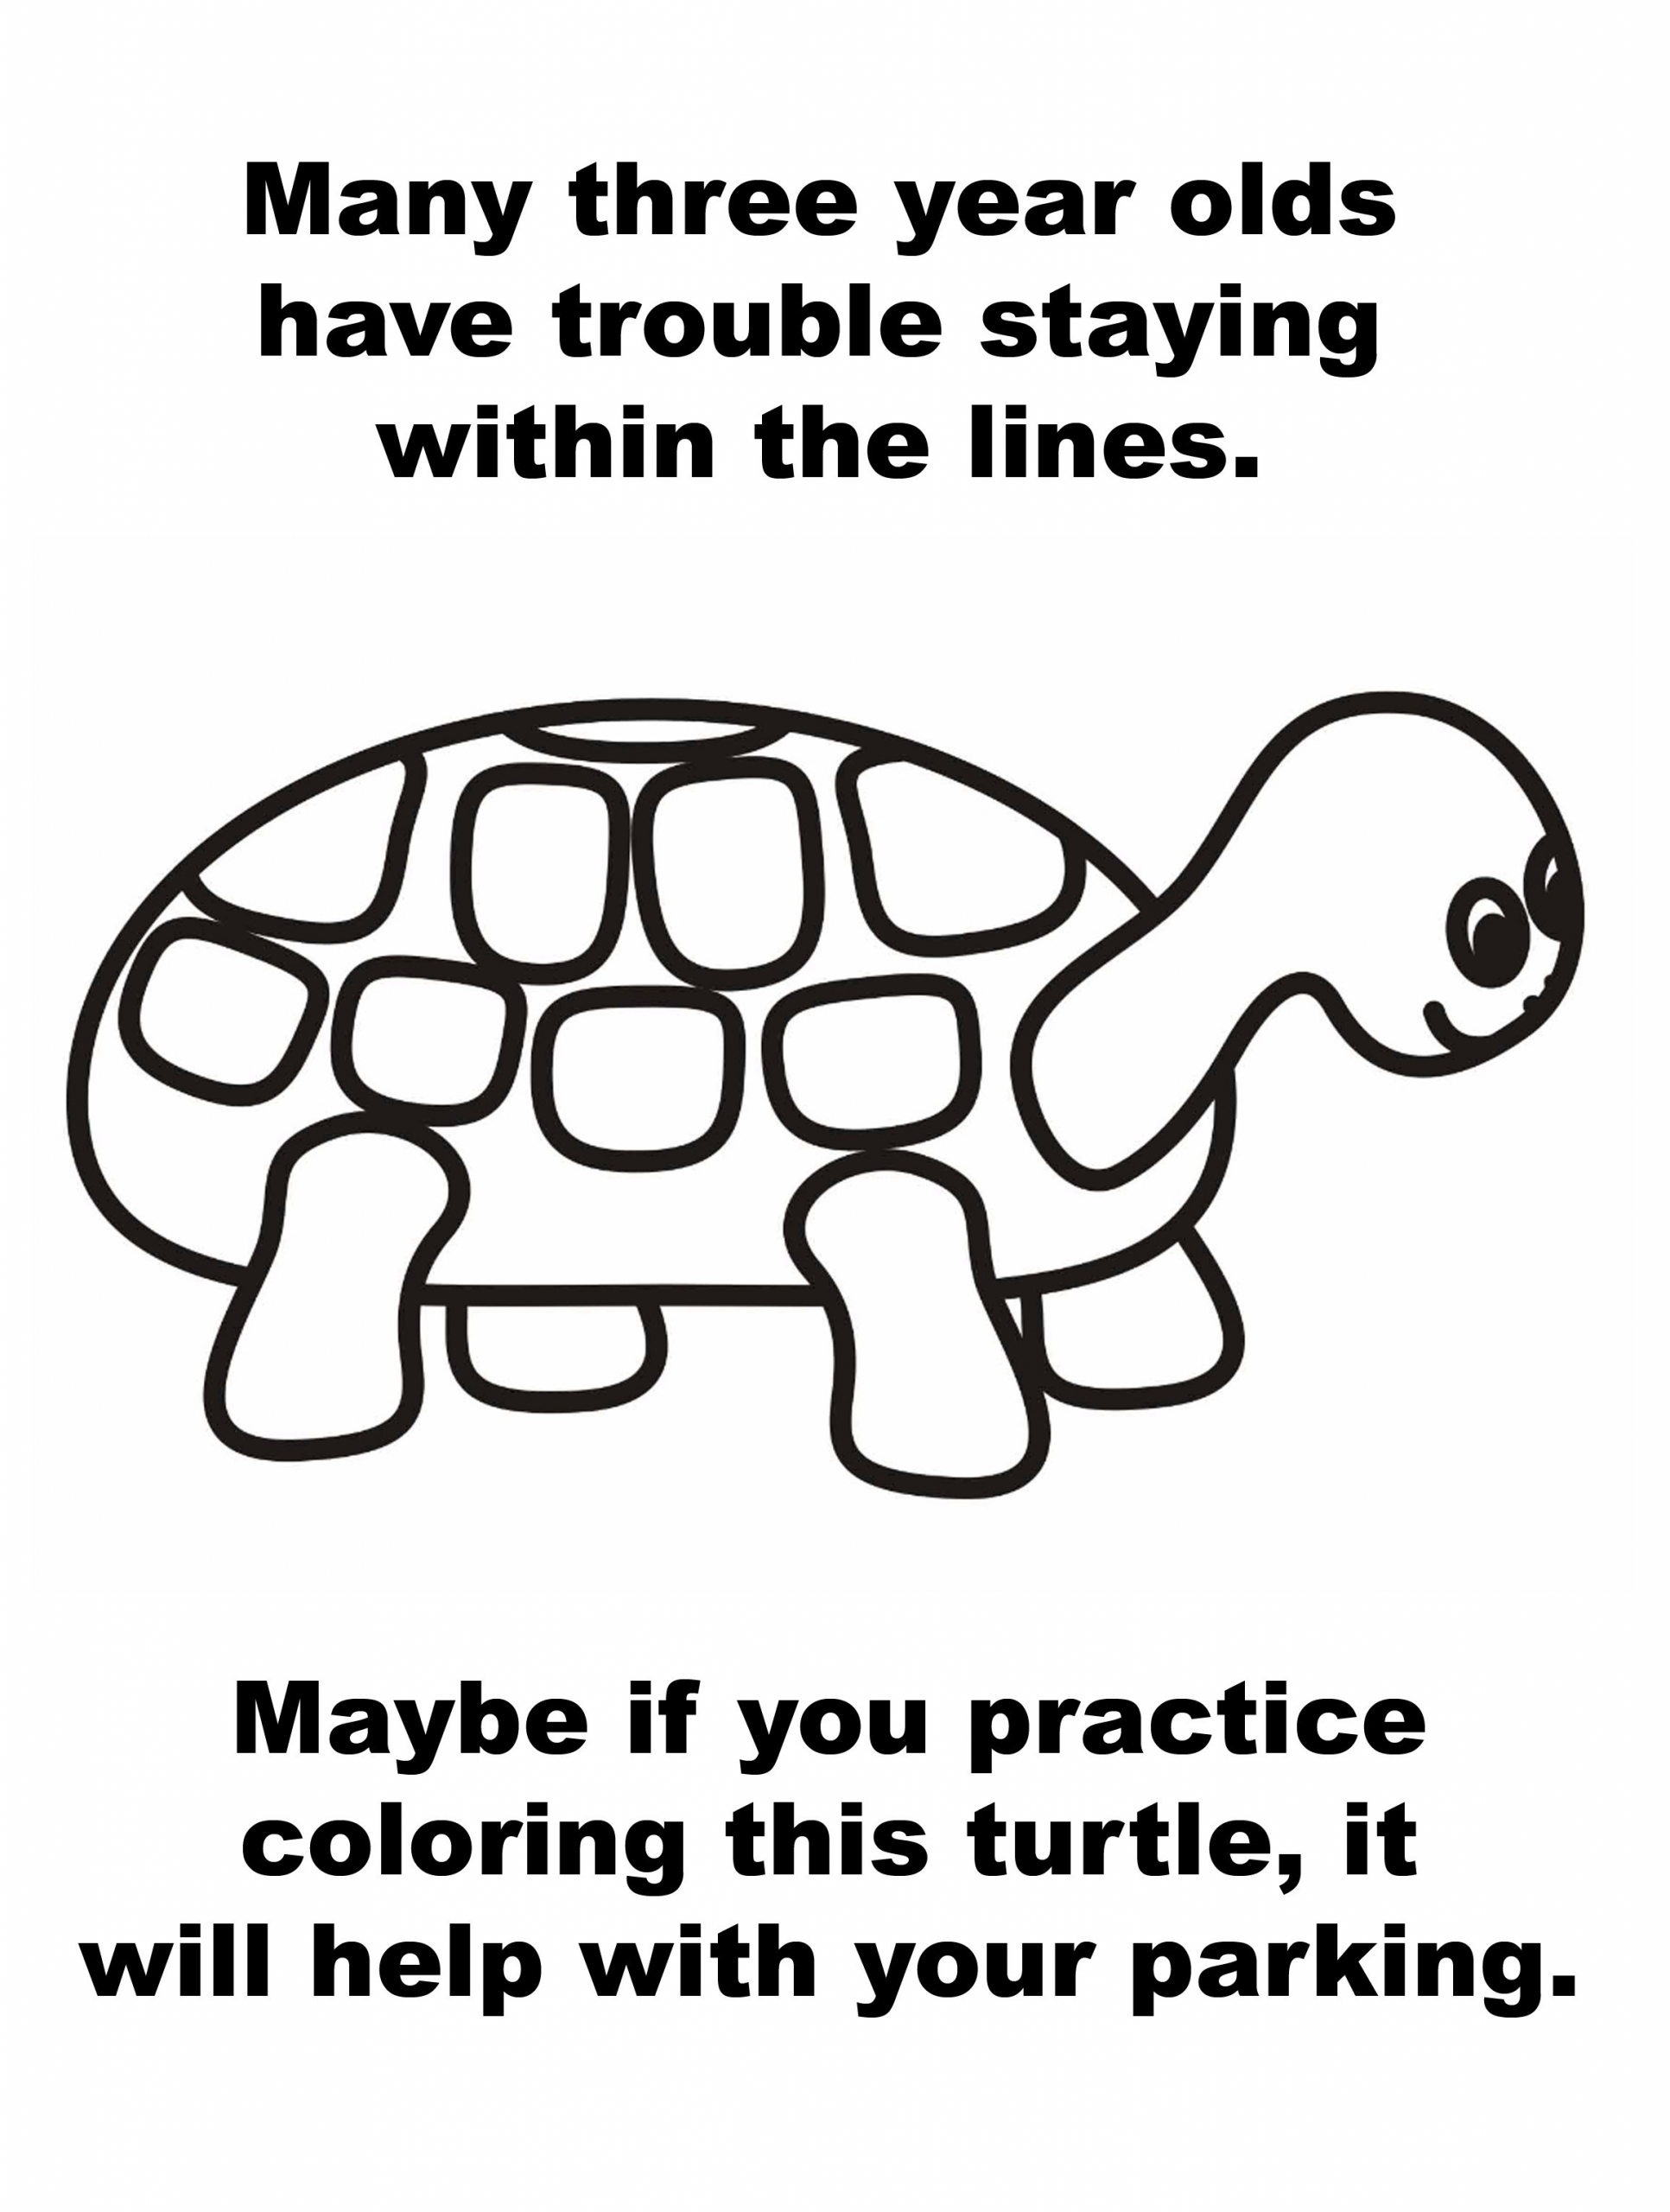 coloring turtle parking pin on turtle coloring page turtle parking coloring